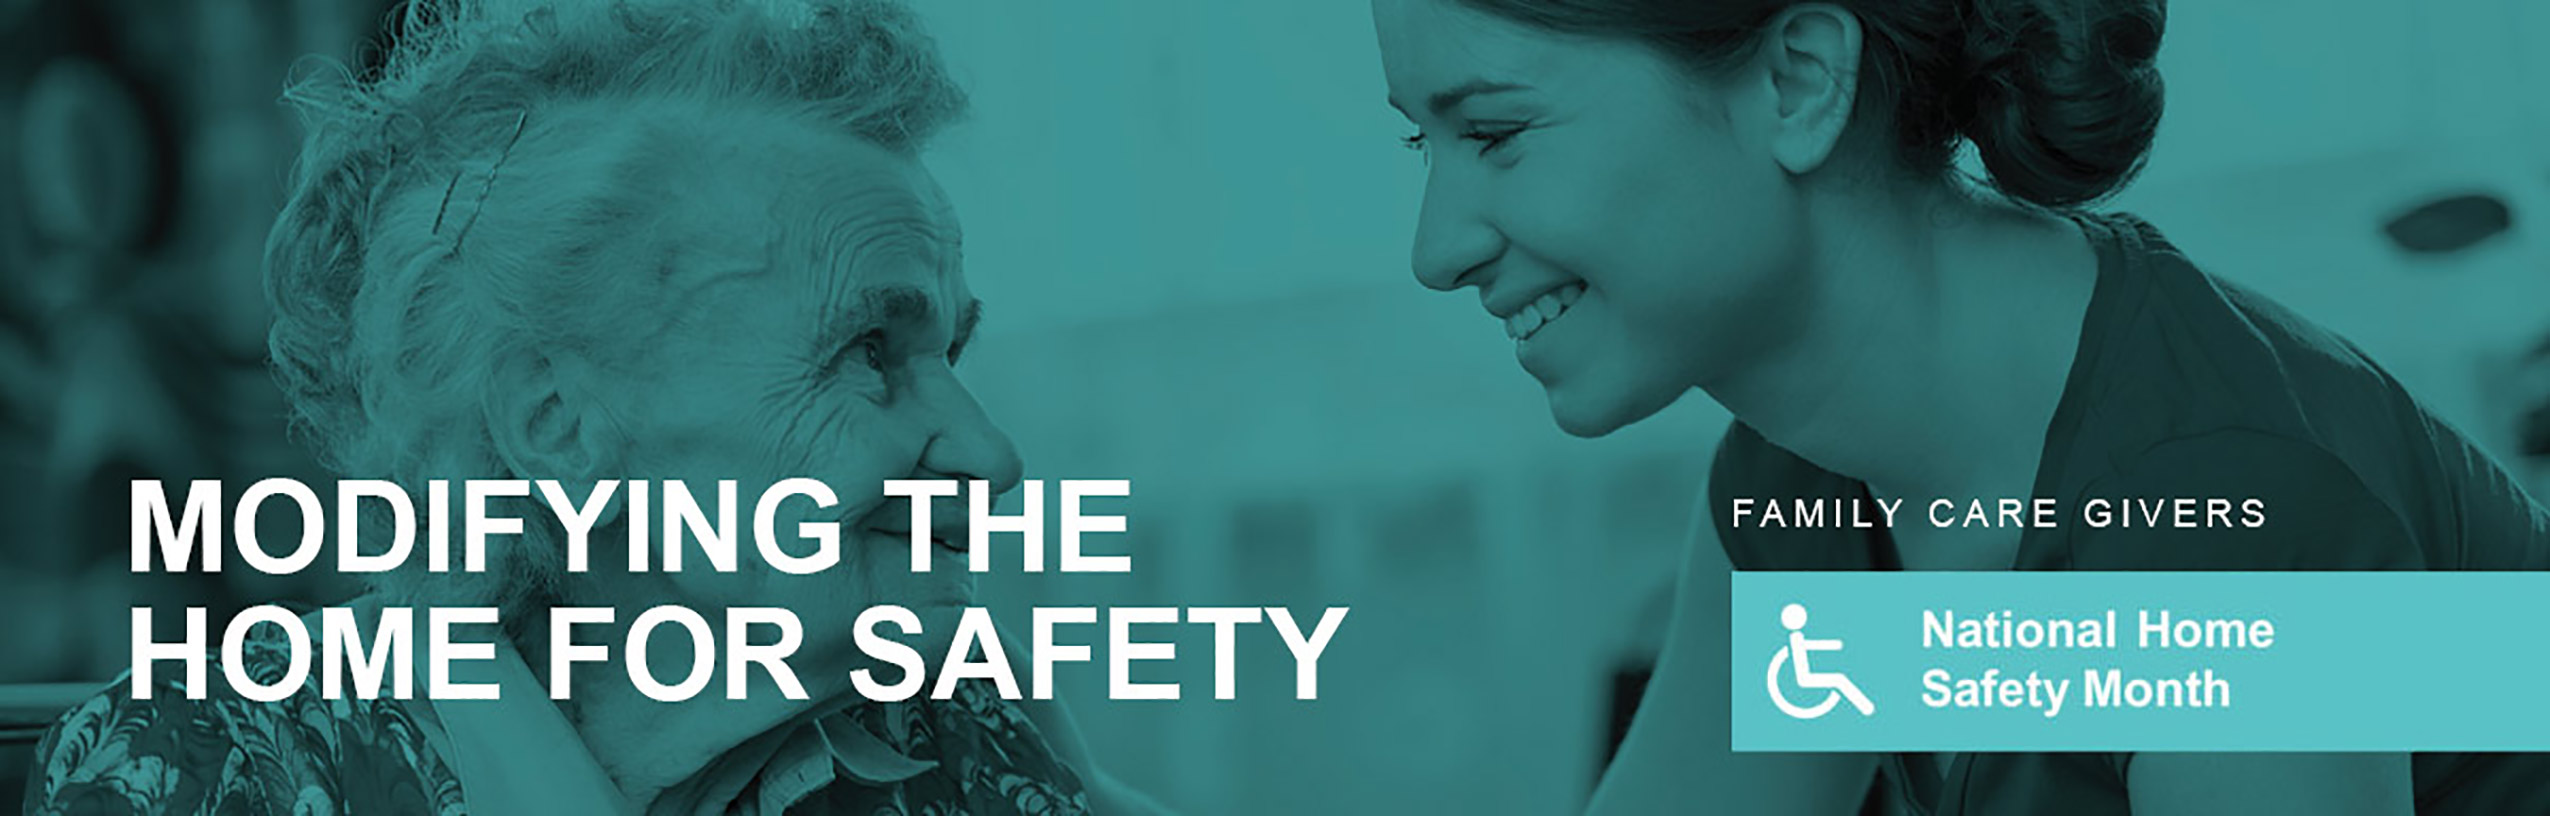 Helpful Home Care info about safety